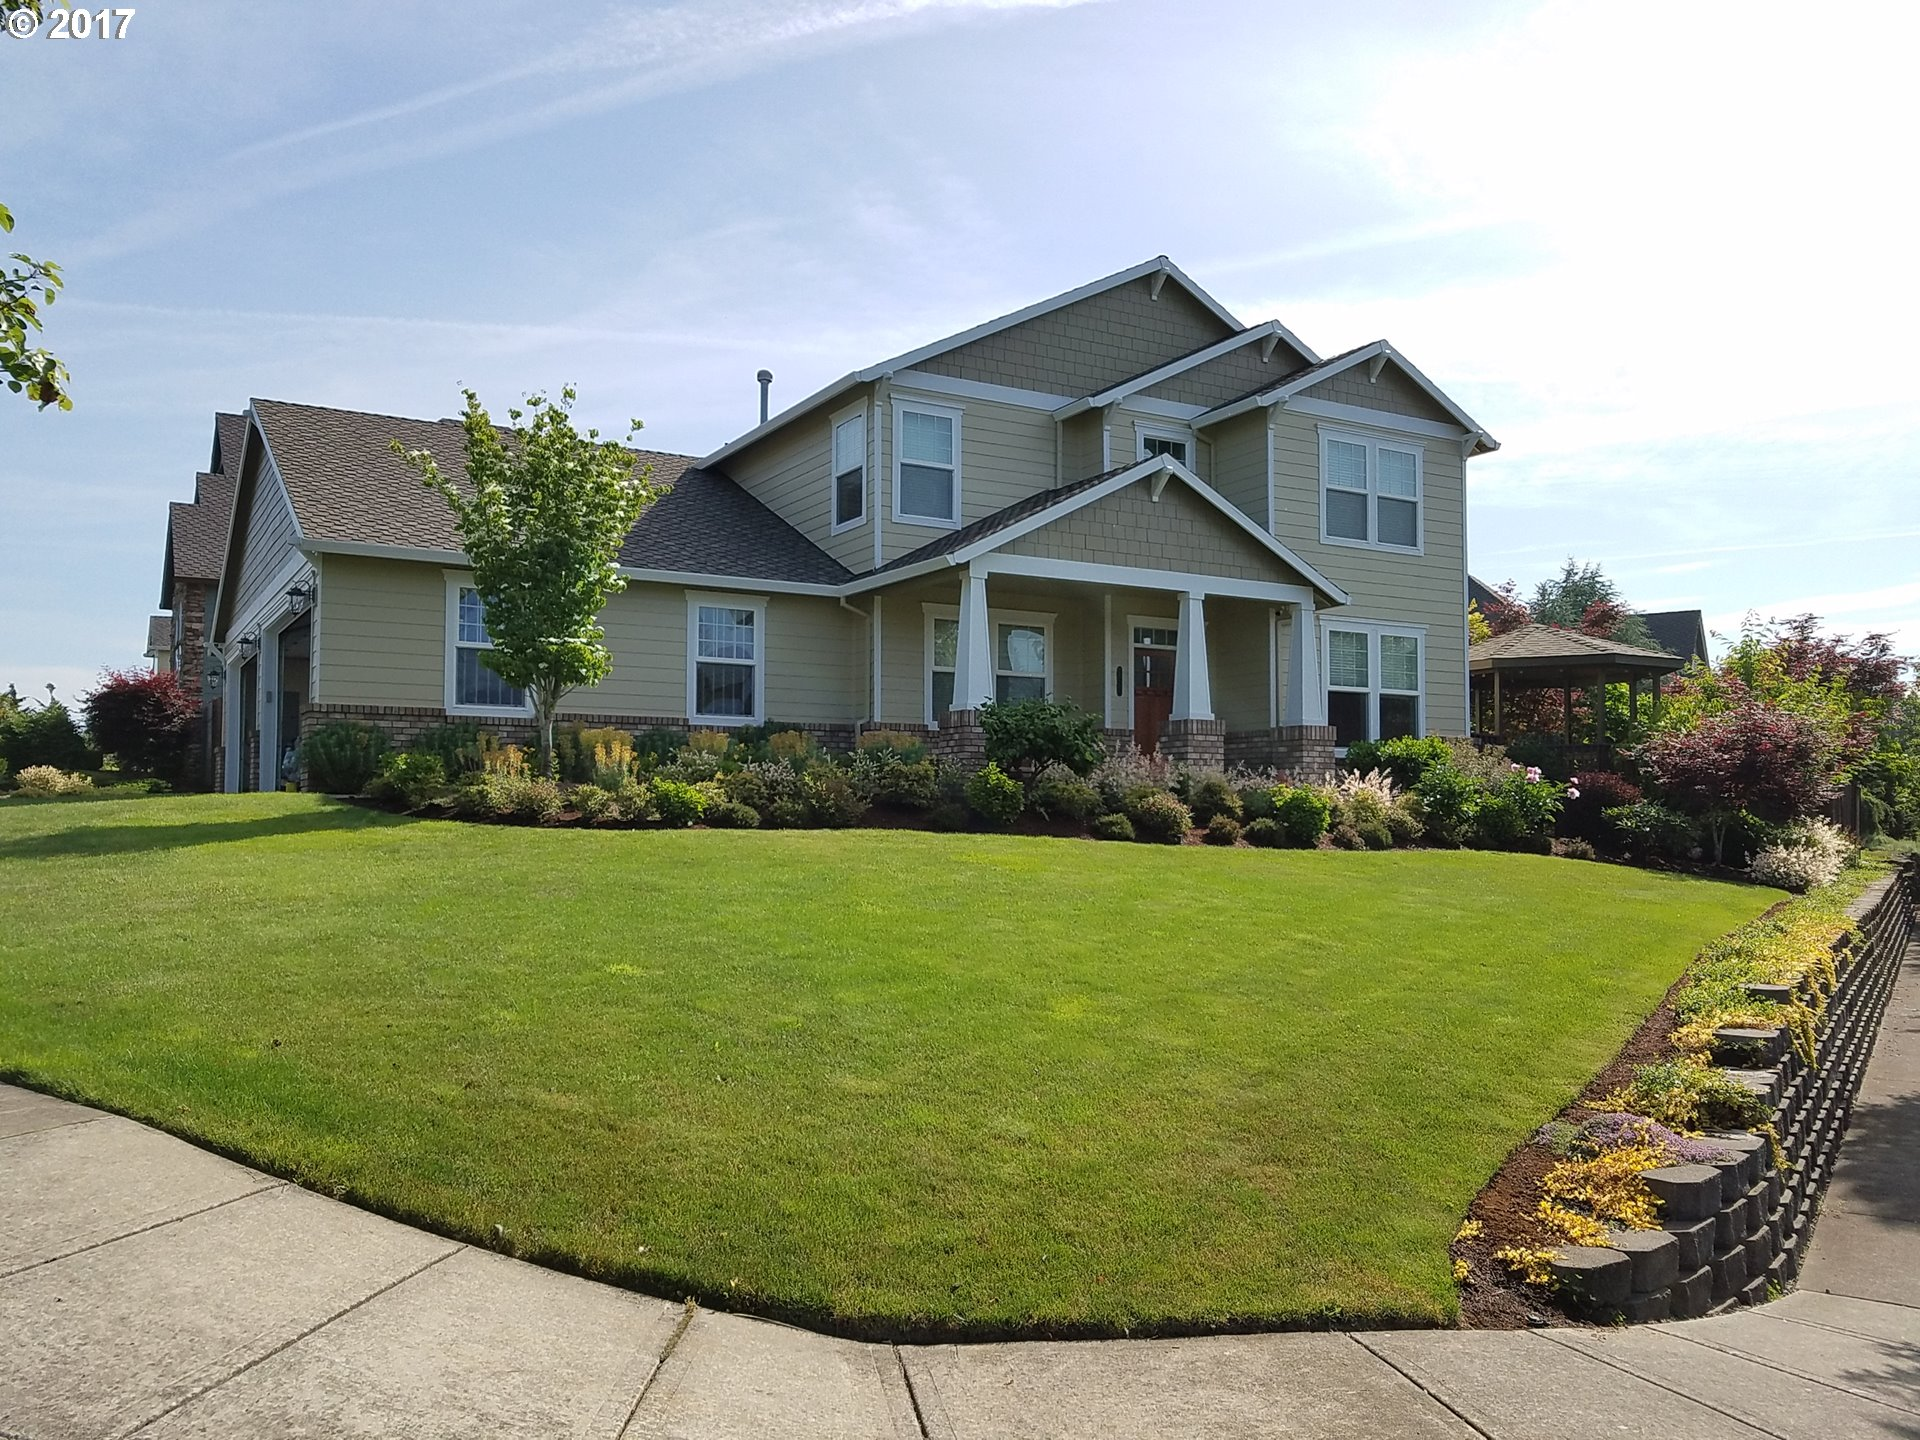 2434 sq. ft 3 bedrooms 2 bathrooms  House For Sale,Portland, OR